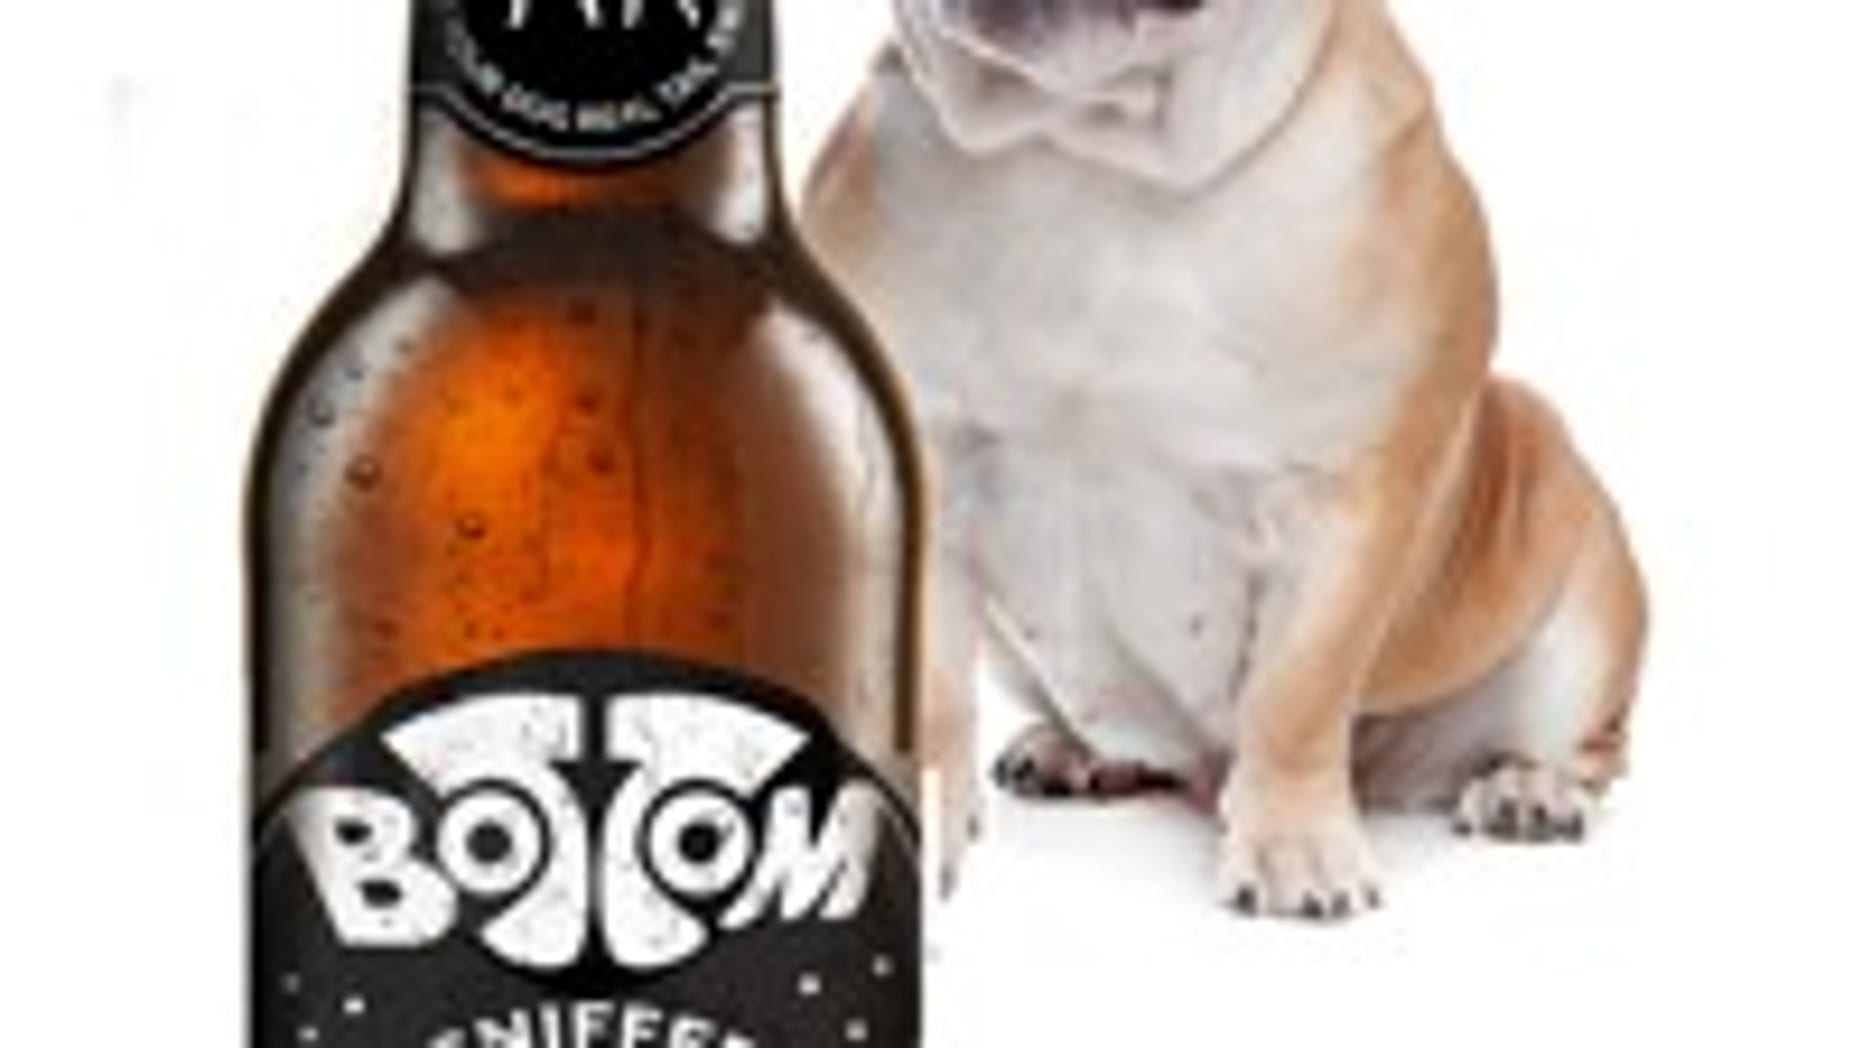 Now man's best friend and can enjoy man's favorite beverage.